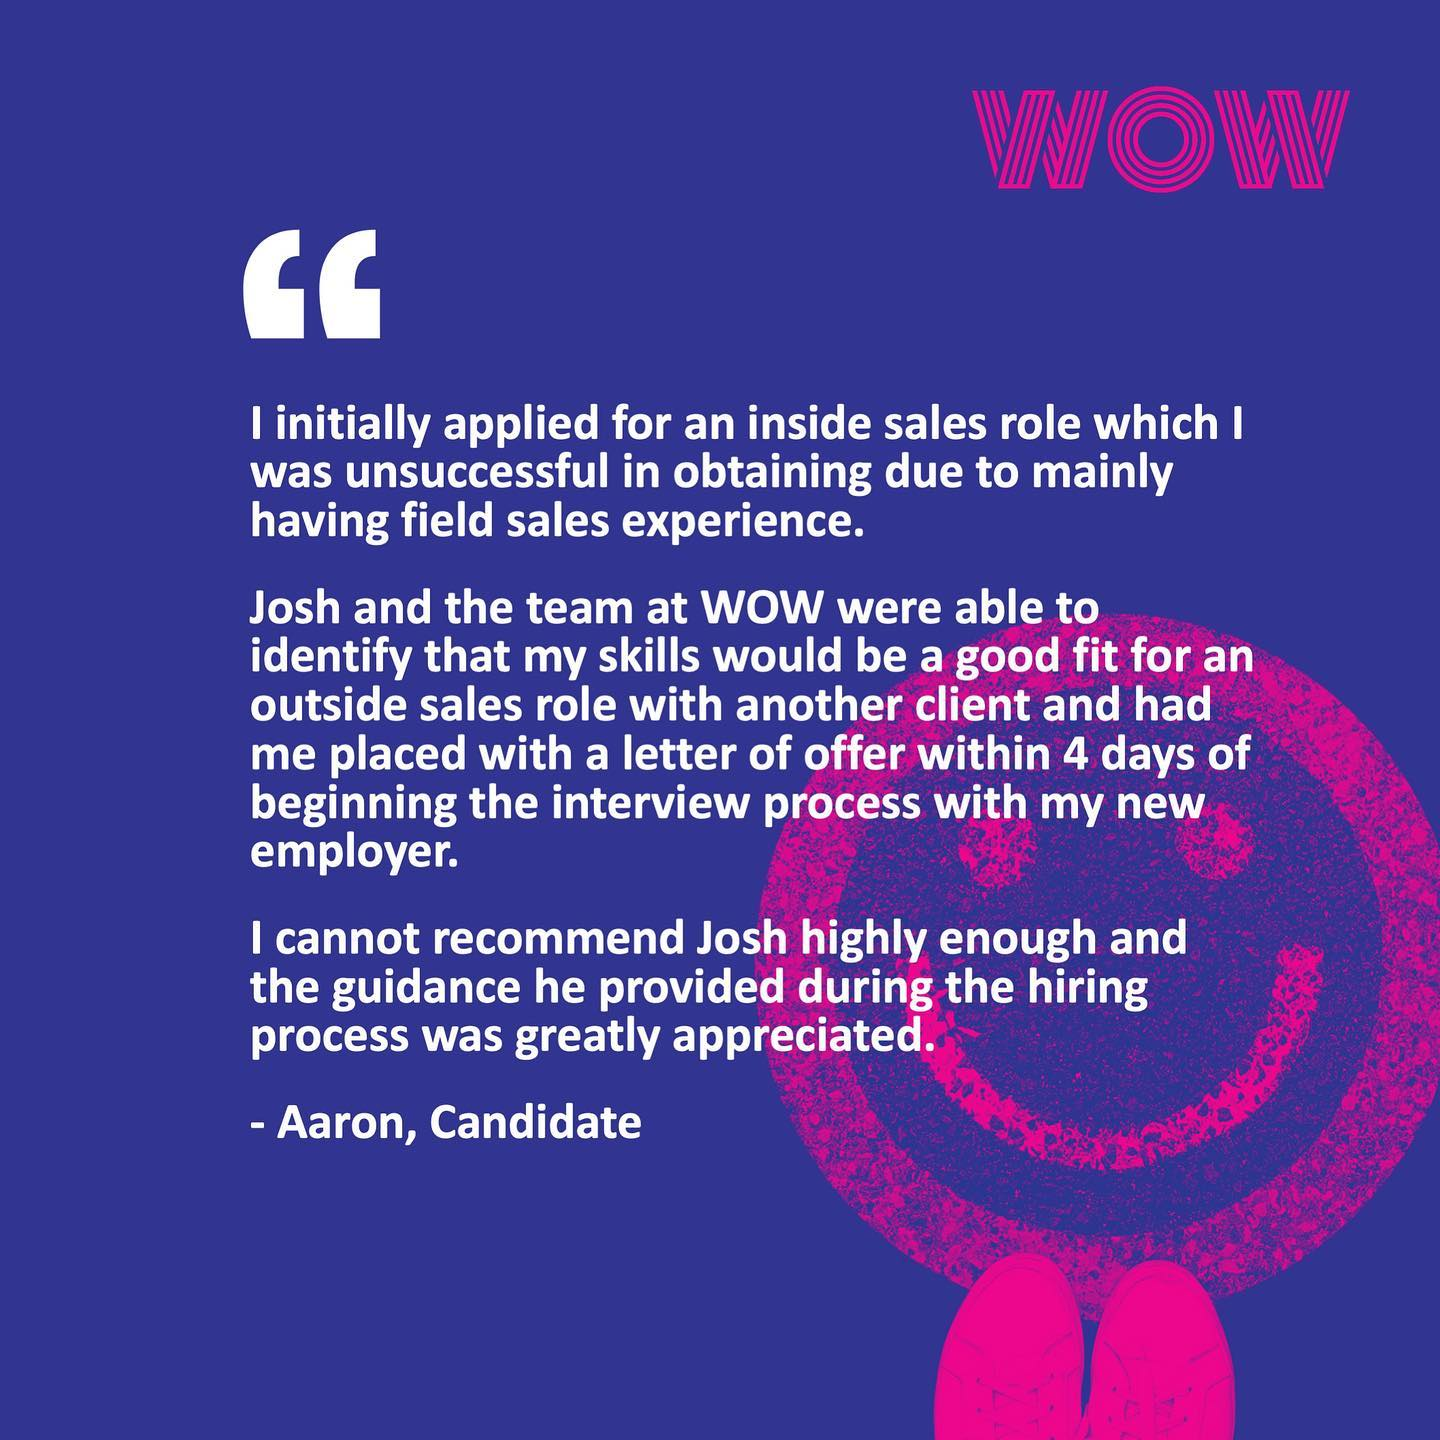 Another great candidate testimonial for Josh! Well done Josh, great review and definitely well deserved